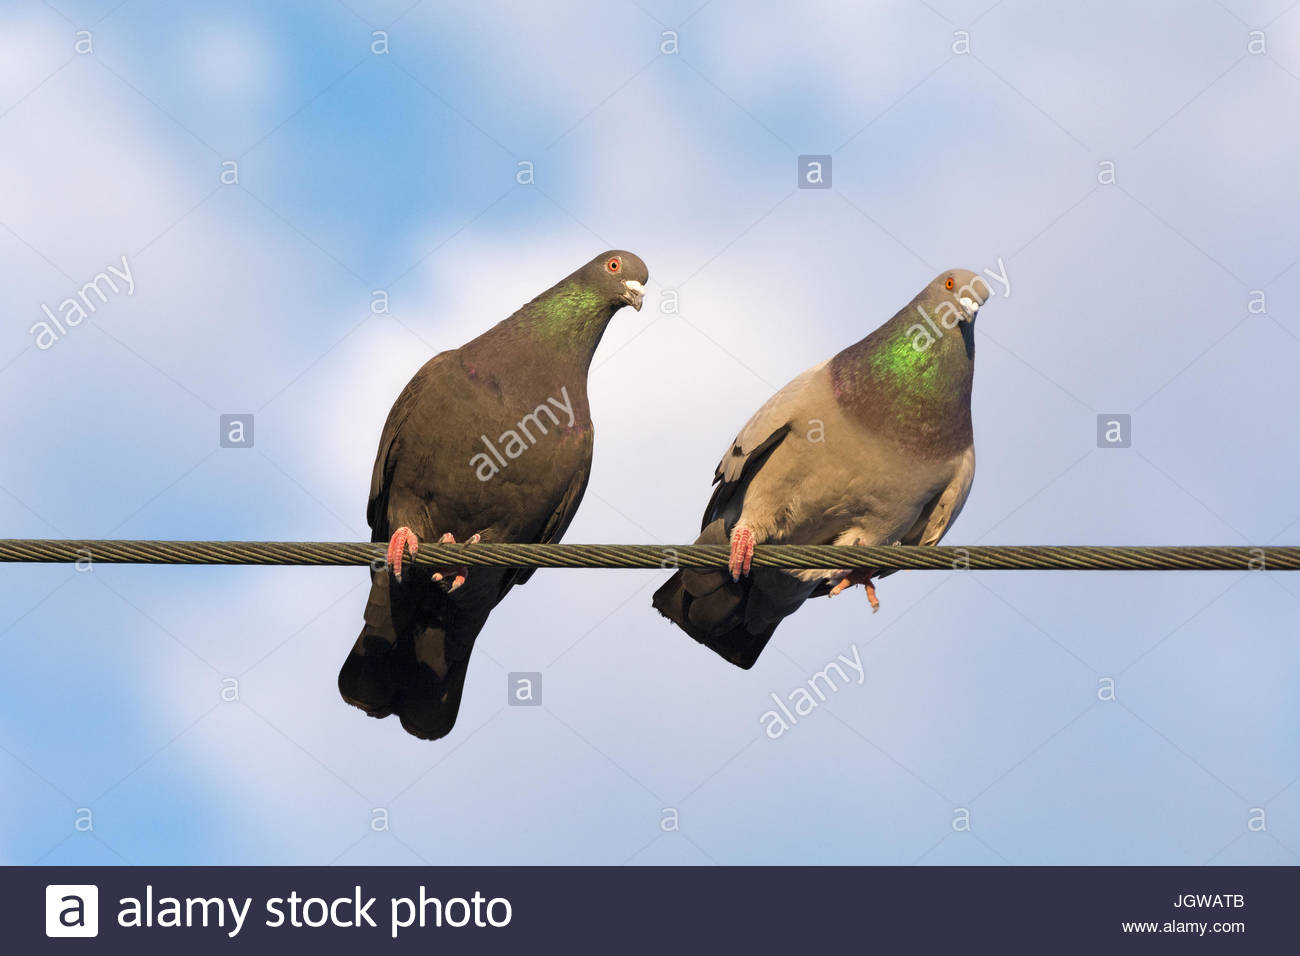 A pair of Rock Pigeons perched on a wire looking down with curiosity - Stock Image